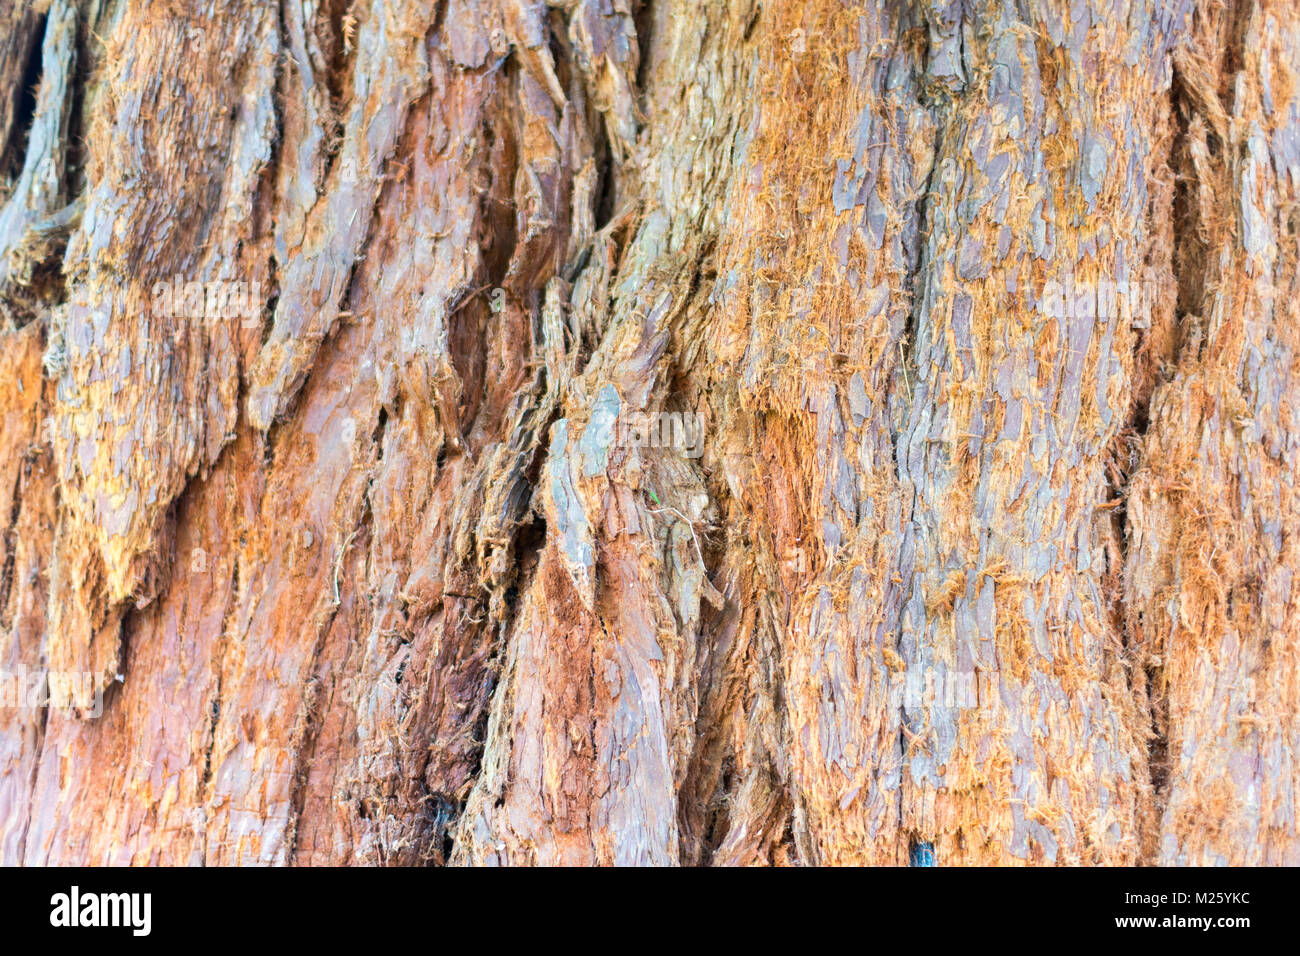 Rough pine tree bark in Sussex, England - Stock Image